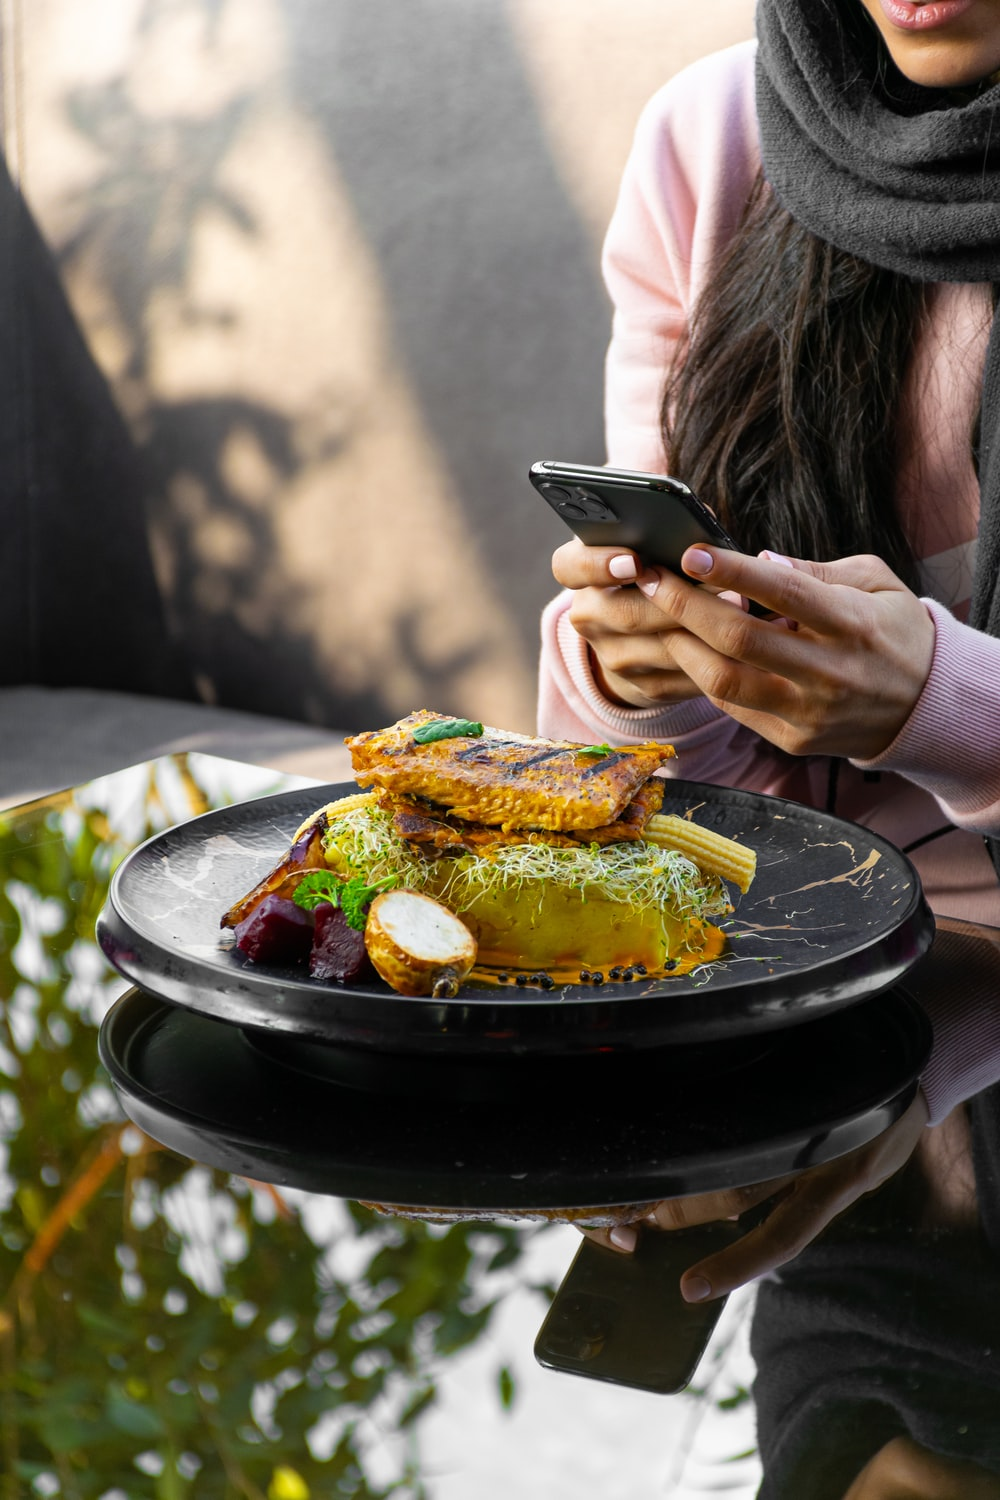 woman holding black smartphone while eating